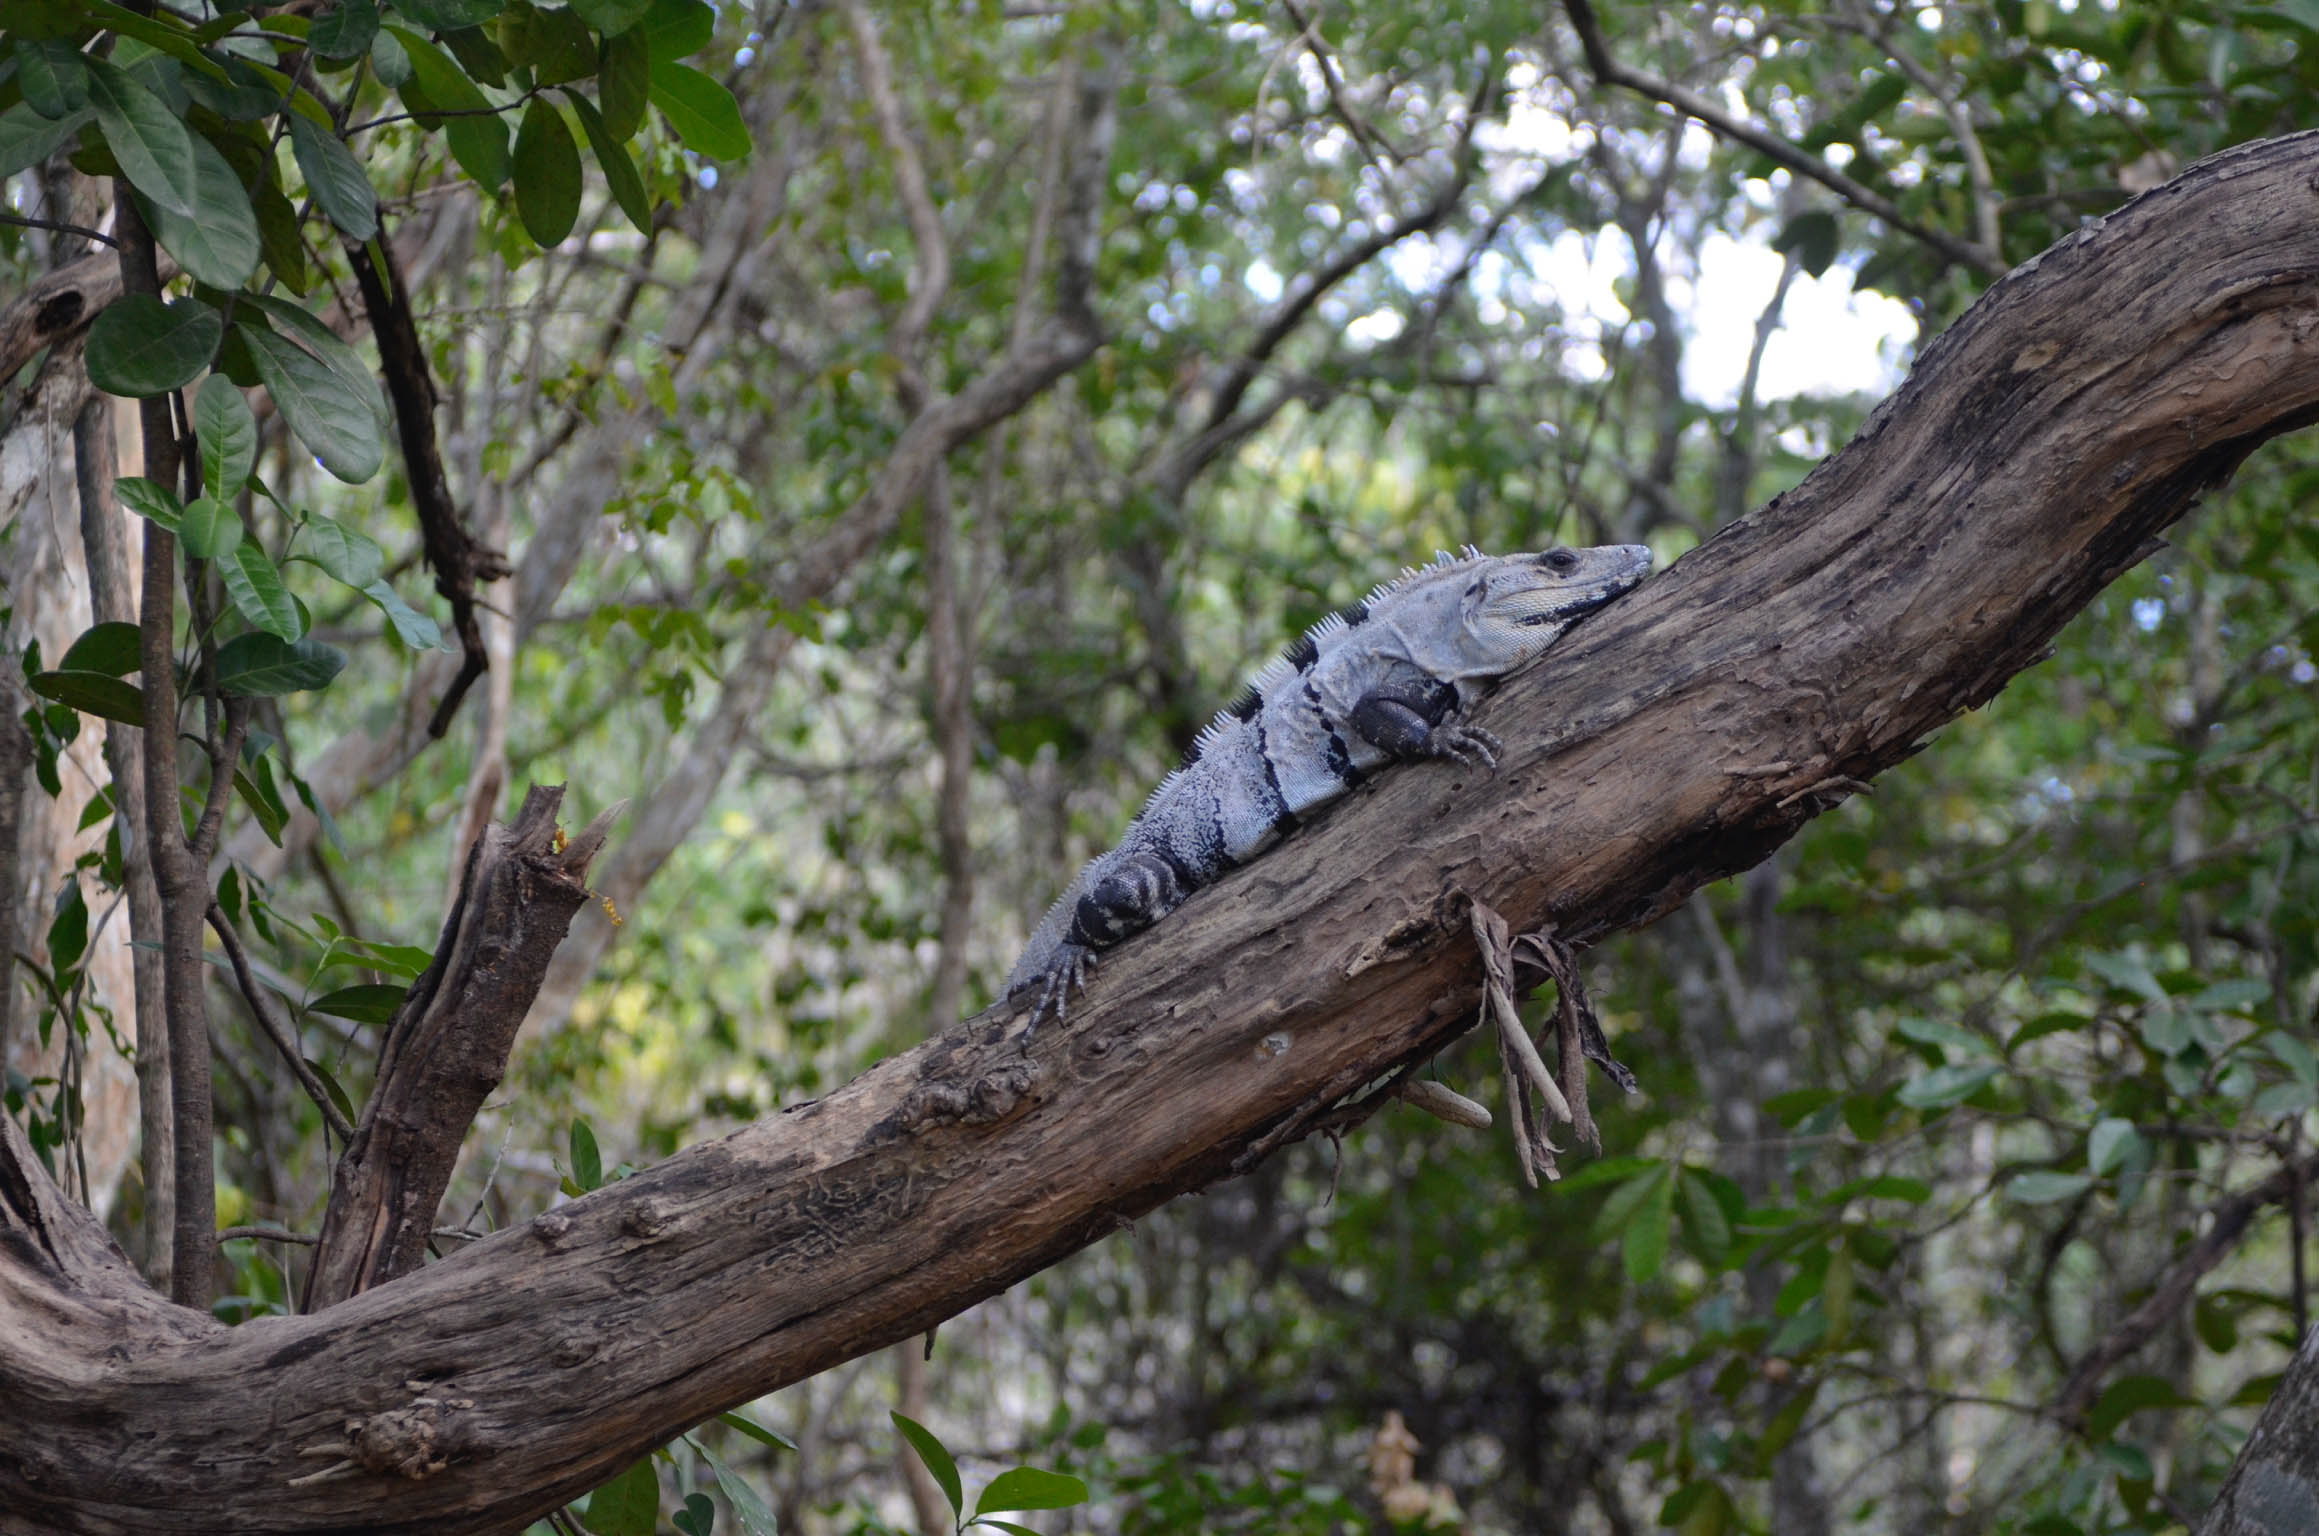 This sporty-looking iguana was one of the few interesting things we saw on the way to Uxmal.